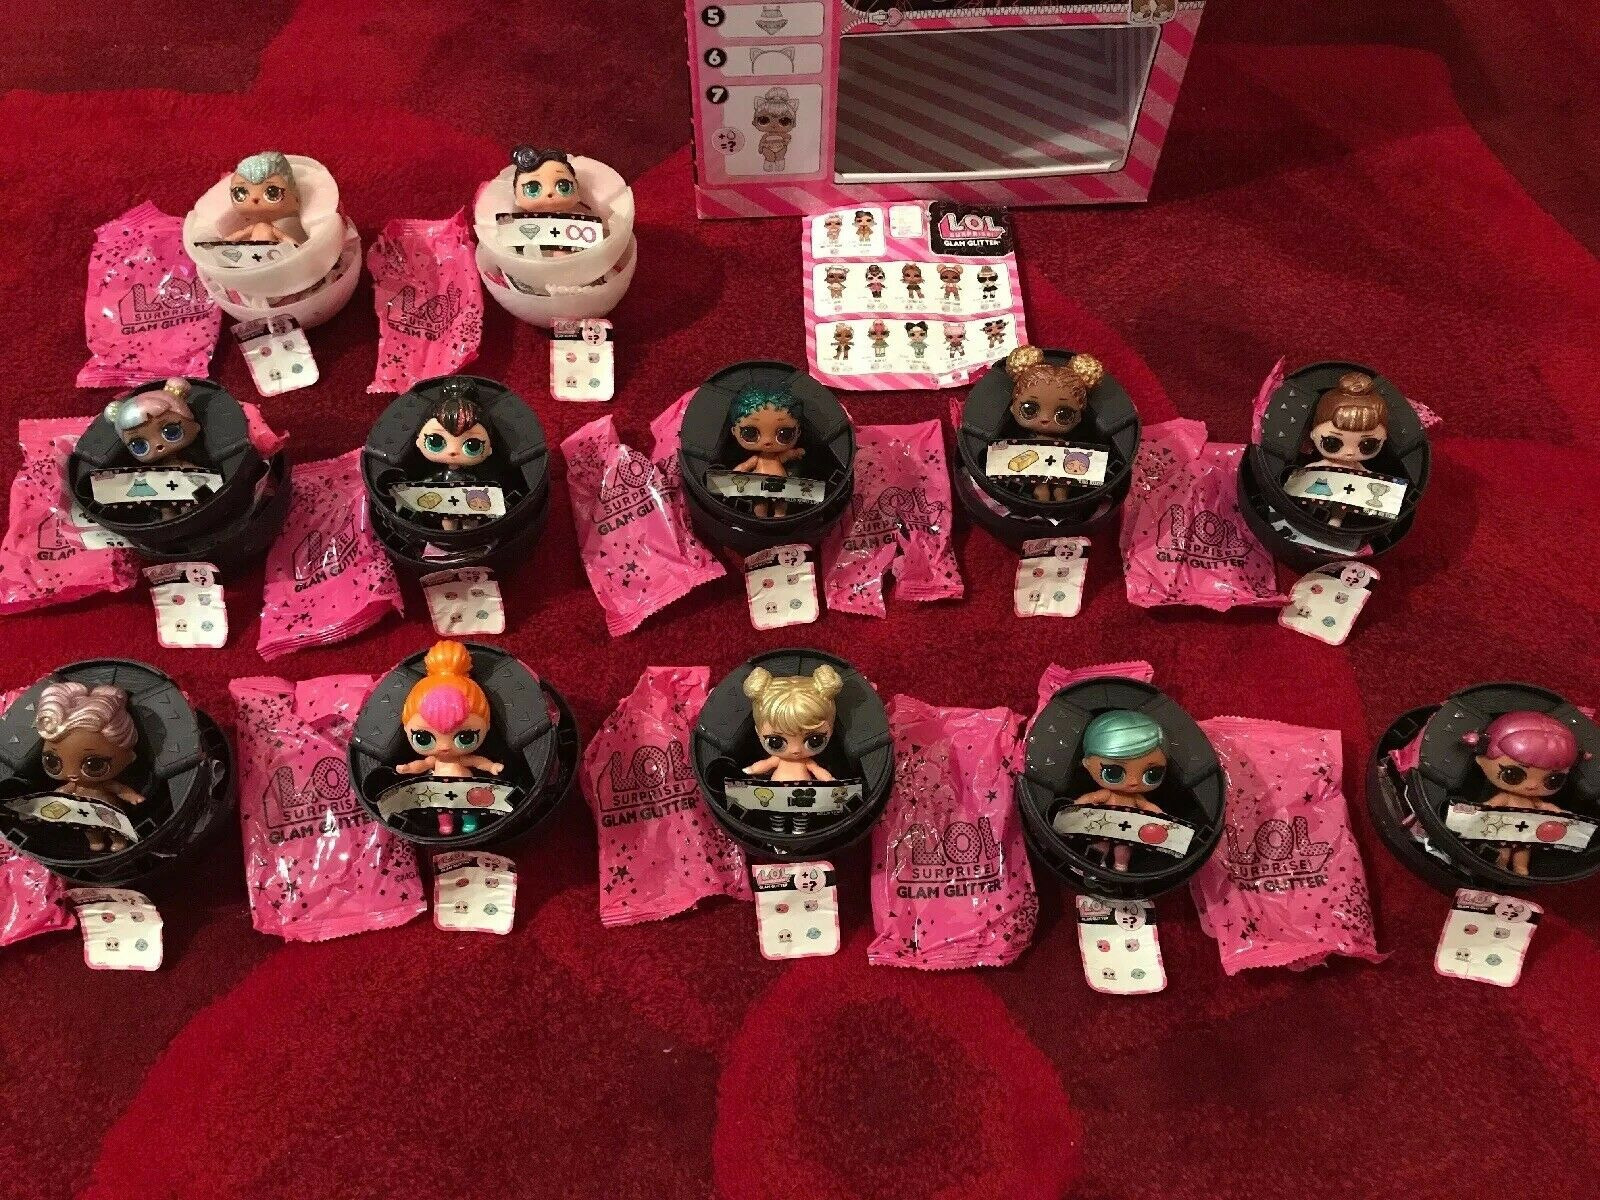 L.O.L Surprise Doll Glam Glitter serie Complete Set Of 12 Dolls - Authentic MGA